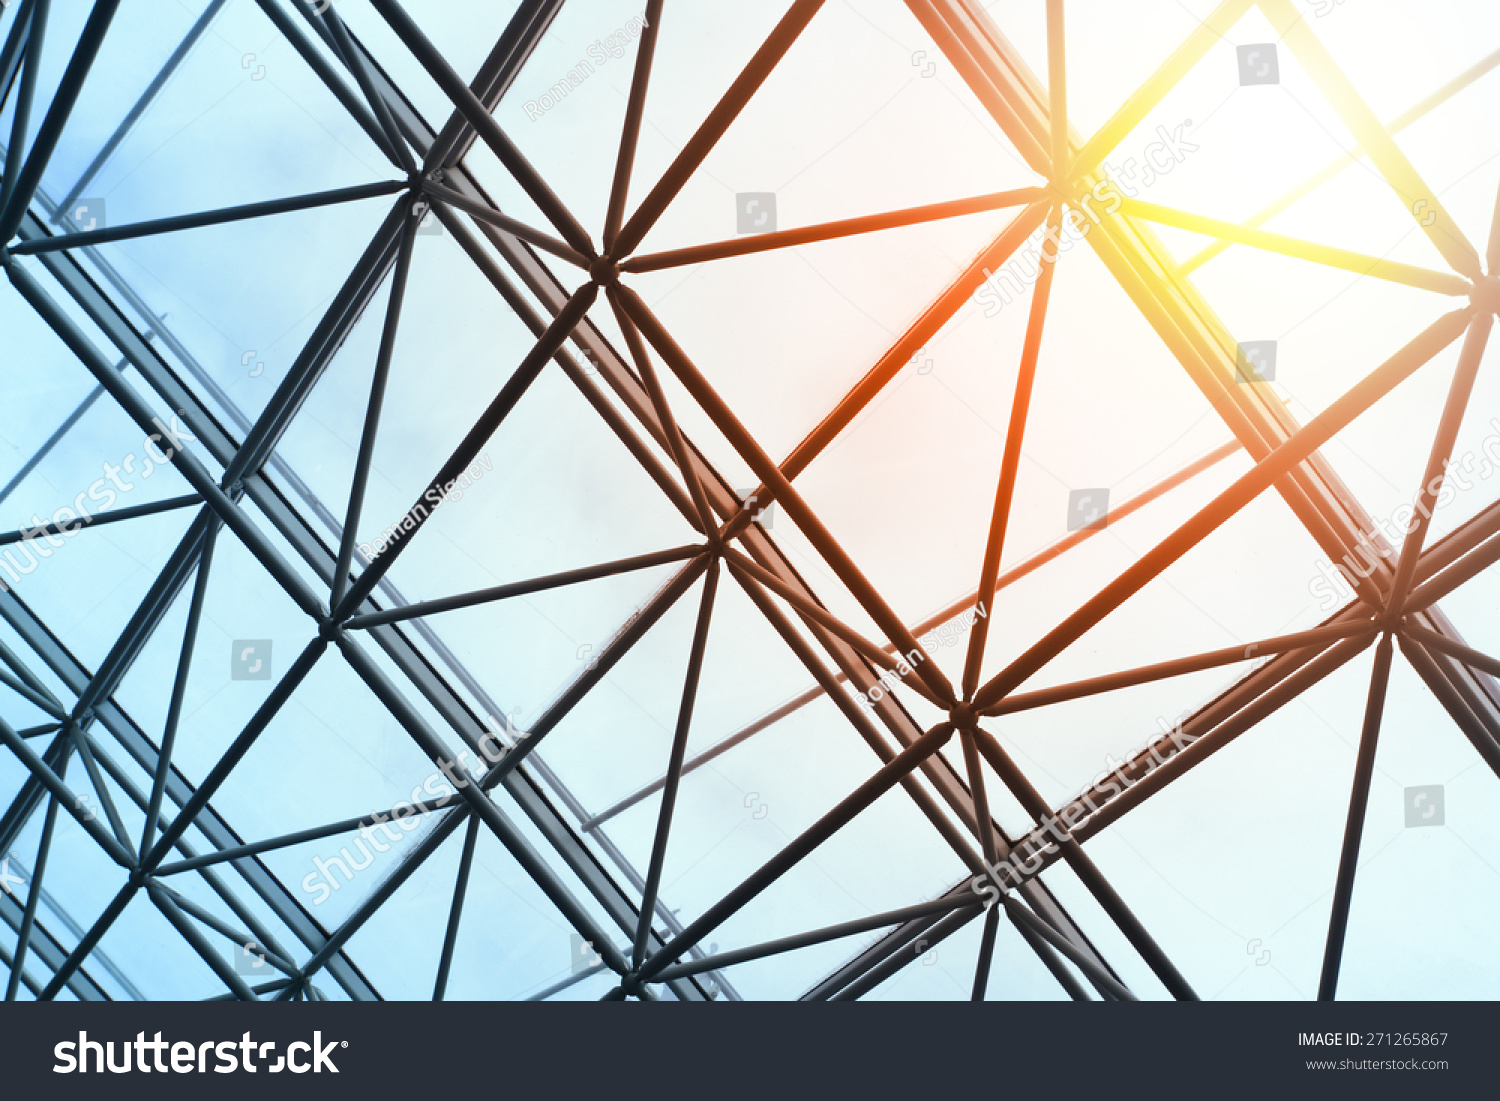 Skylight window abstract architectural background stock for Architectural skylights